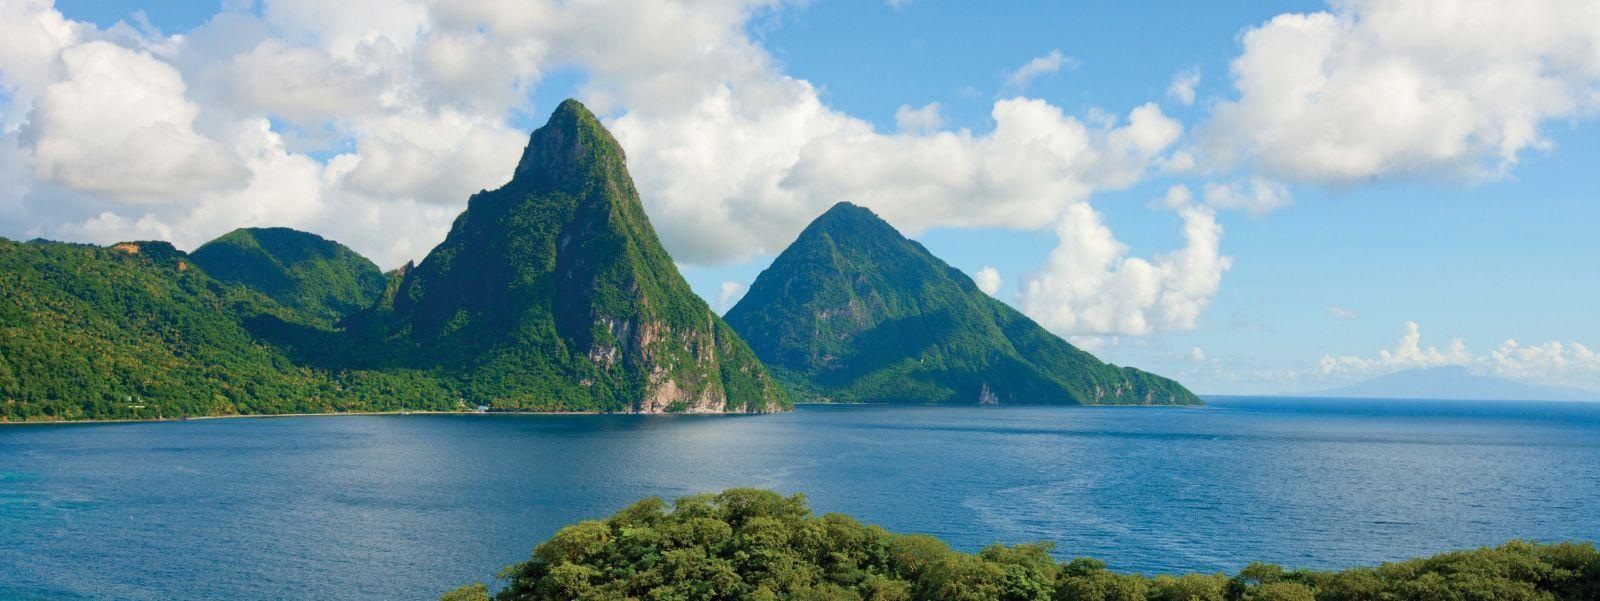 Destination Saint Lucia Product Guide – Saint Lucia Tourism News